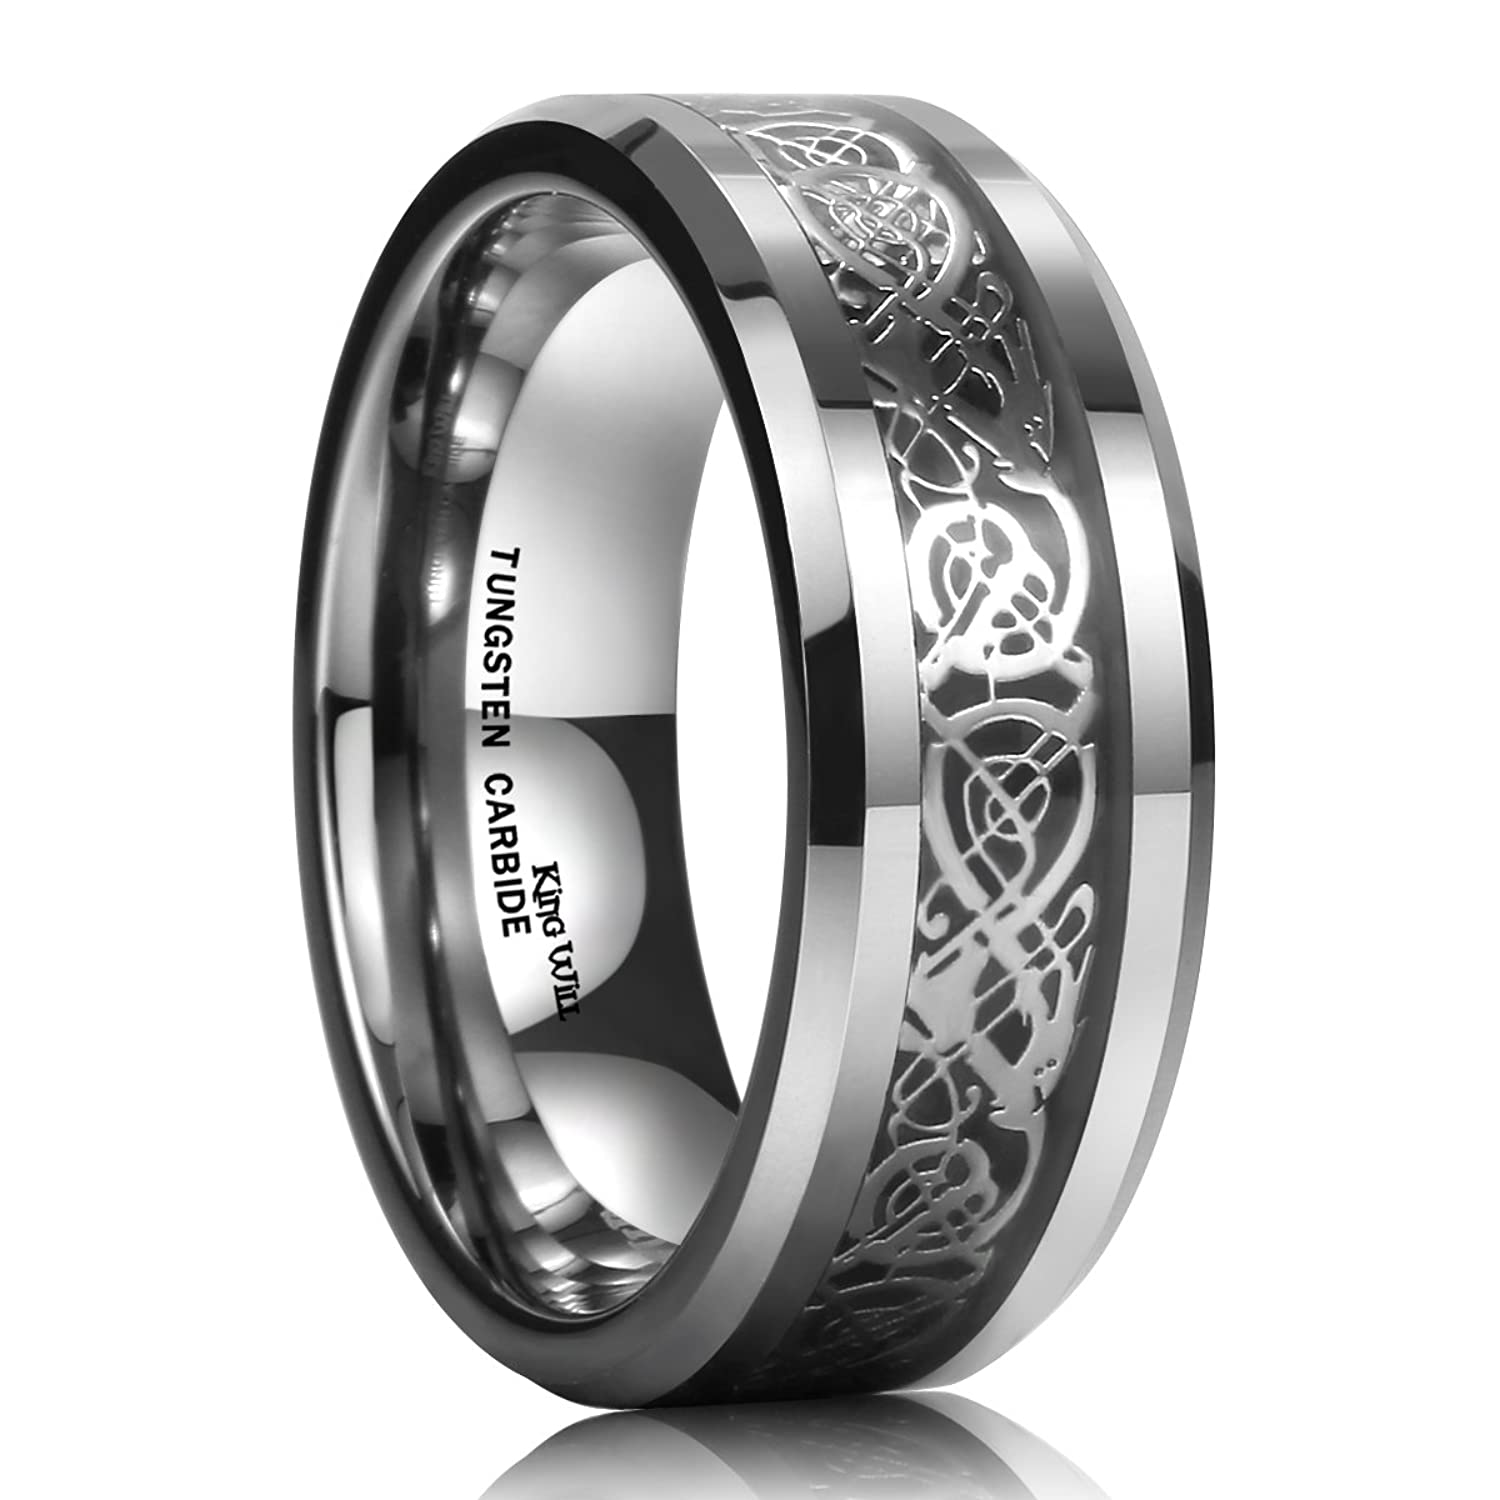 King Will DRAGON Men Tungsten Carbide Ring Wedding Band 8mm Silver Celtic  Dragon Inlay Polish Finish|Amazon.com